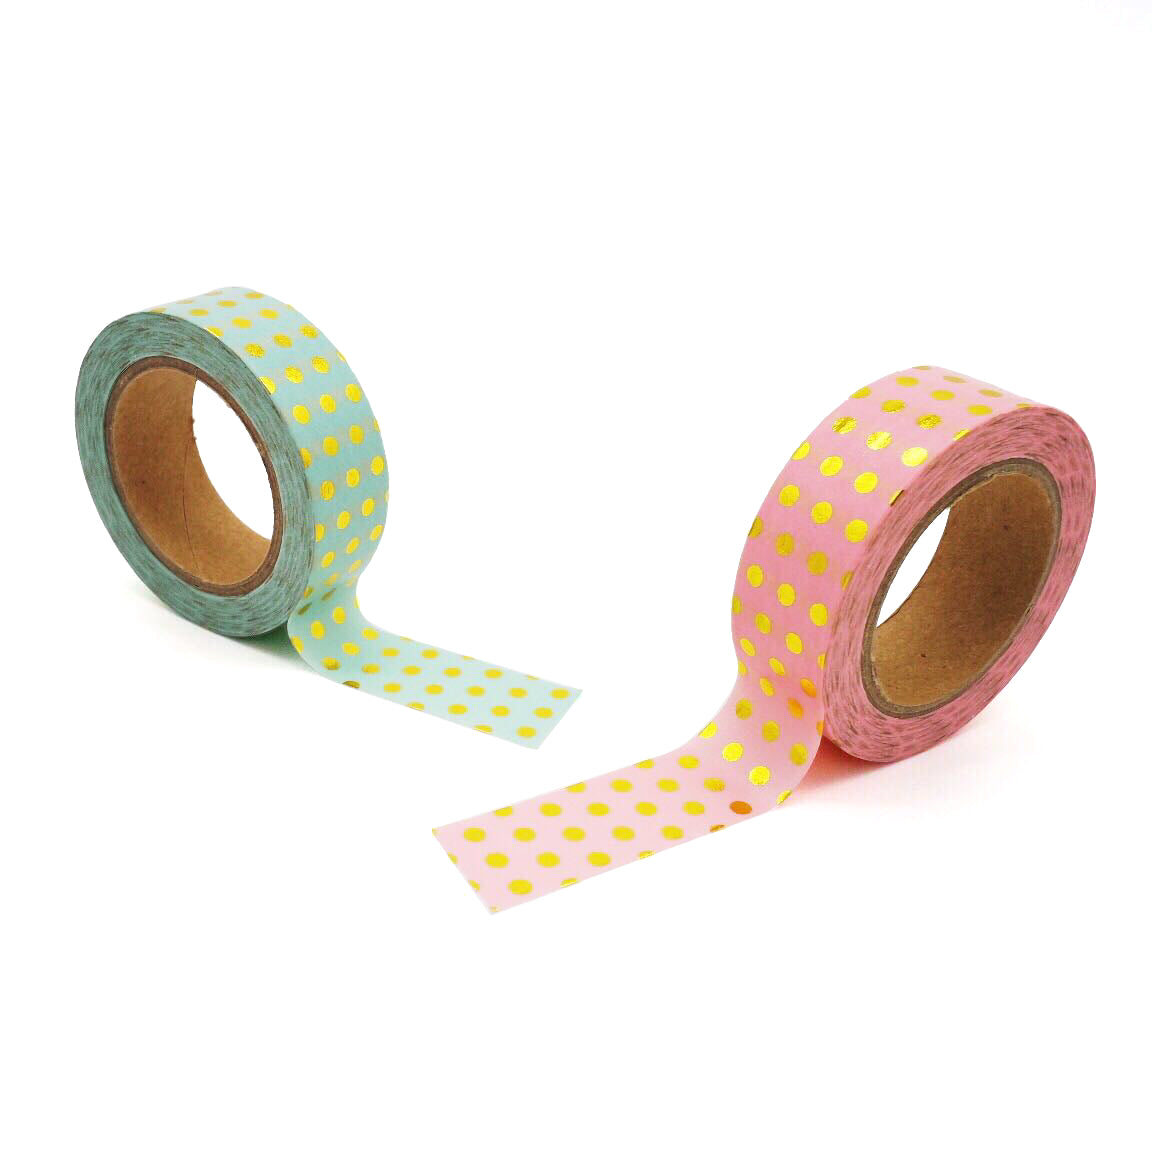 Foiled Polka Washi Tape Duo